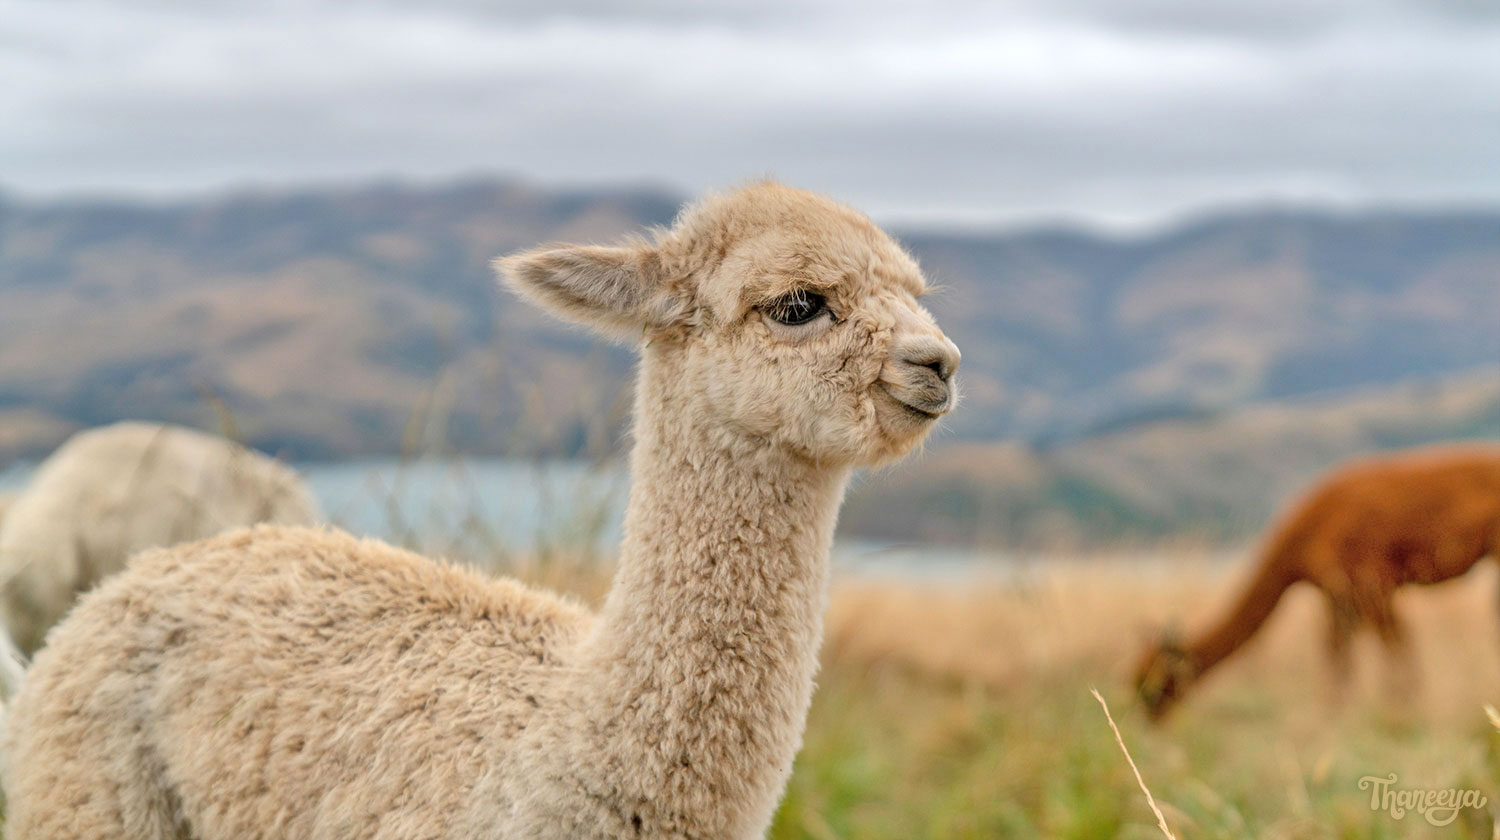 Alpaca at Shamarra Alpaca Farm in Akaroa, New Zealand